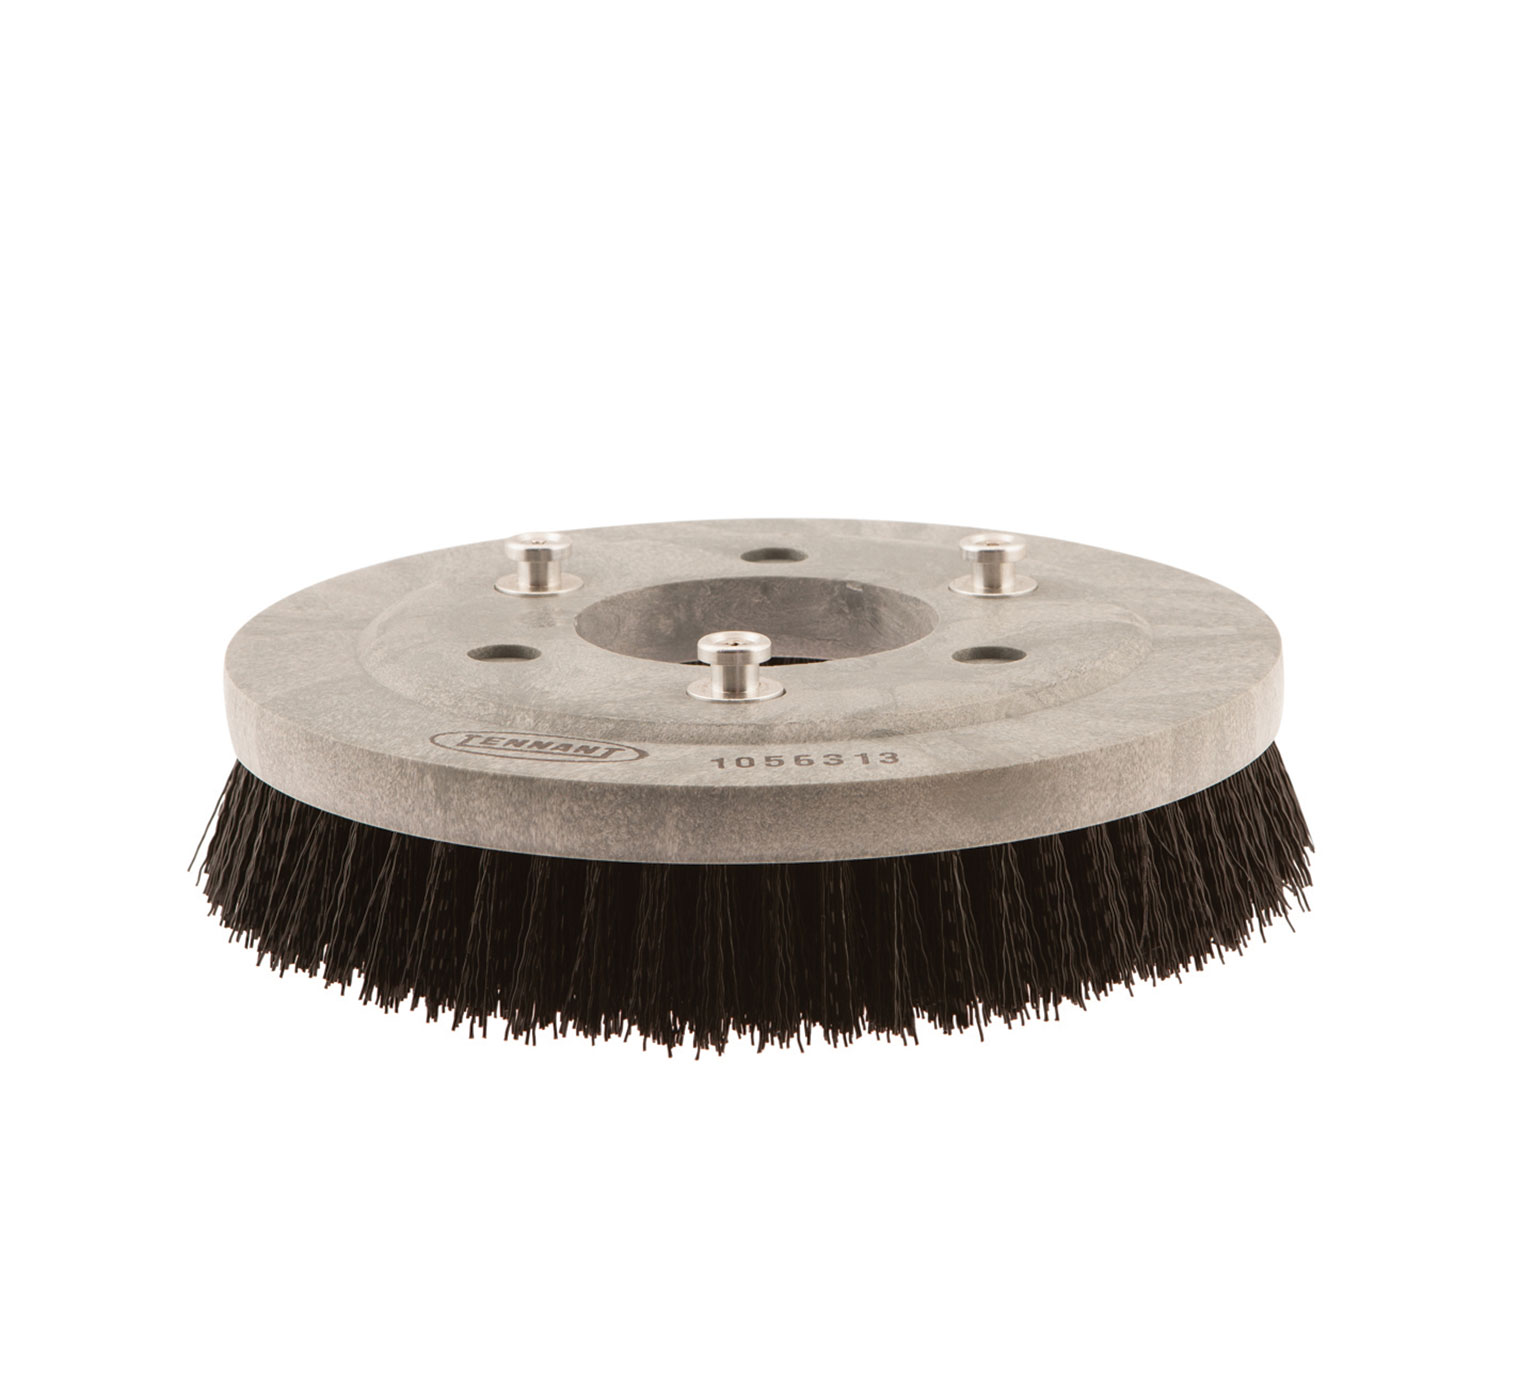 1056313 Polypropylene Disk Scrub Brush Assembly – 12 in / 304.8 mm alt 1